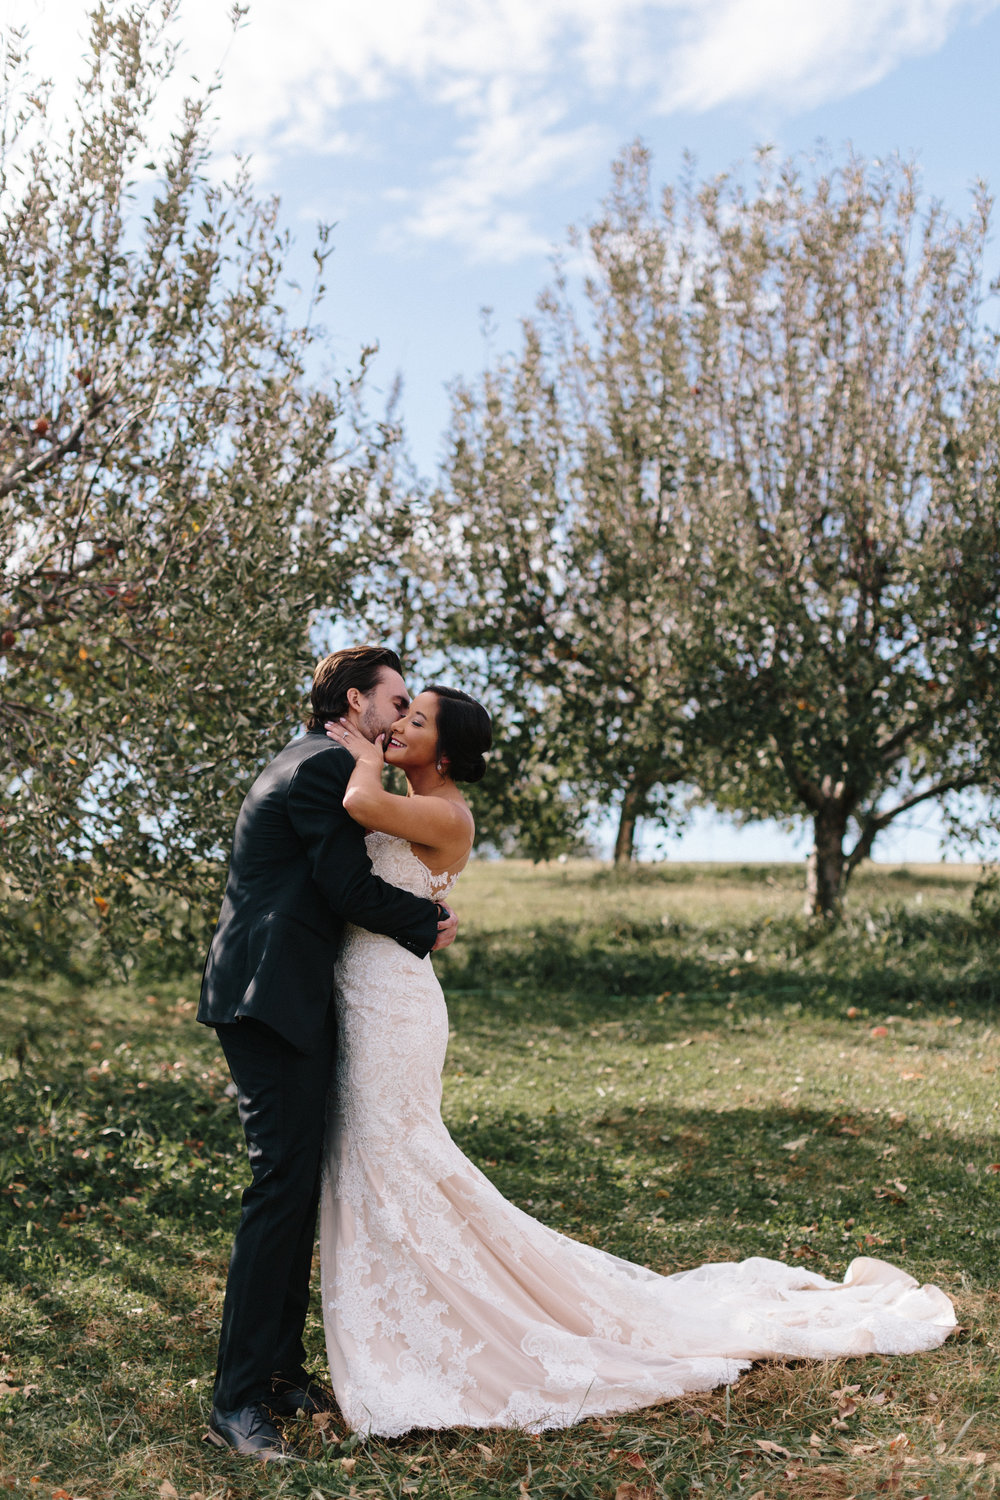 alyssa barletter photography weston red barn farm fall wedding marisa and kurtis-11.jpg